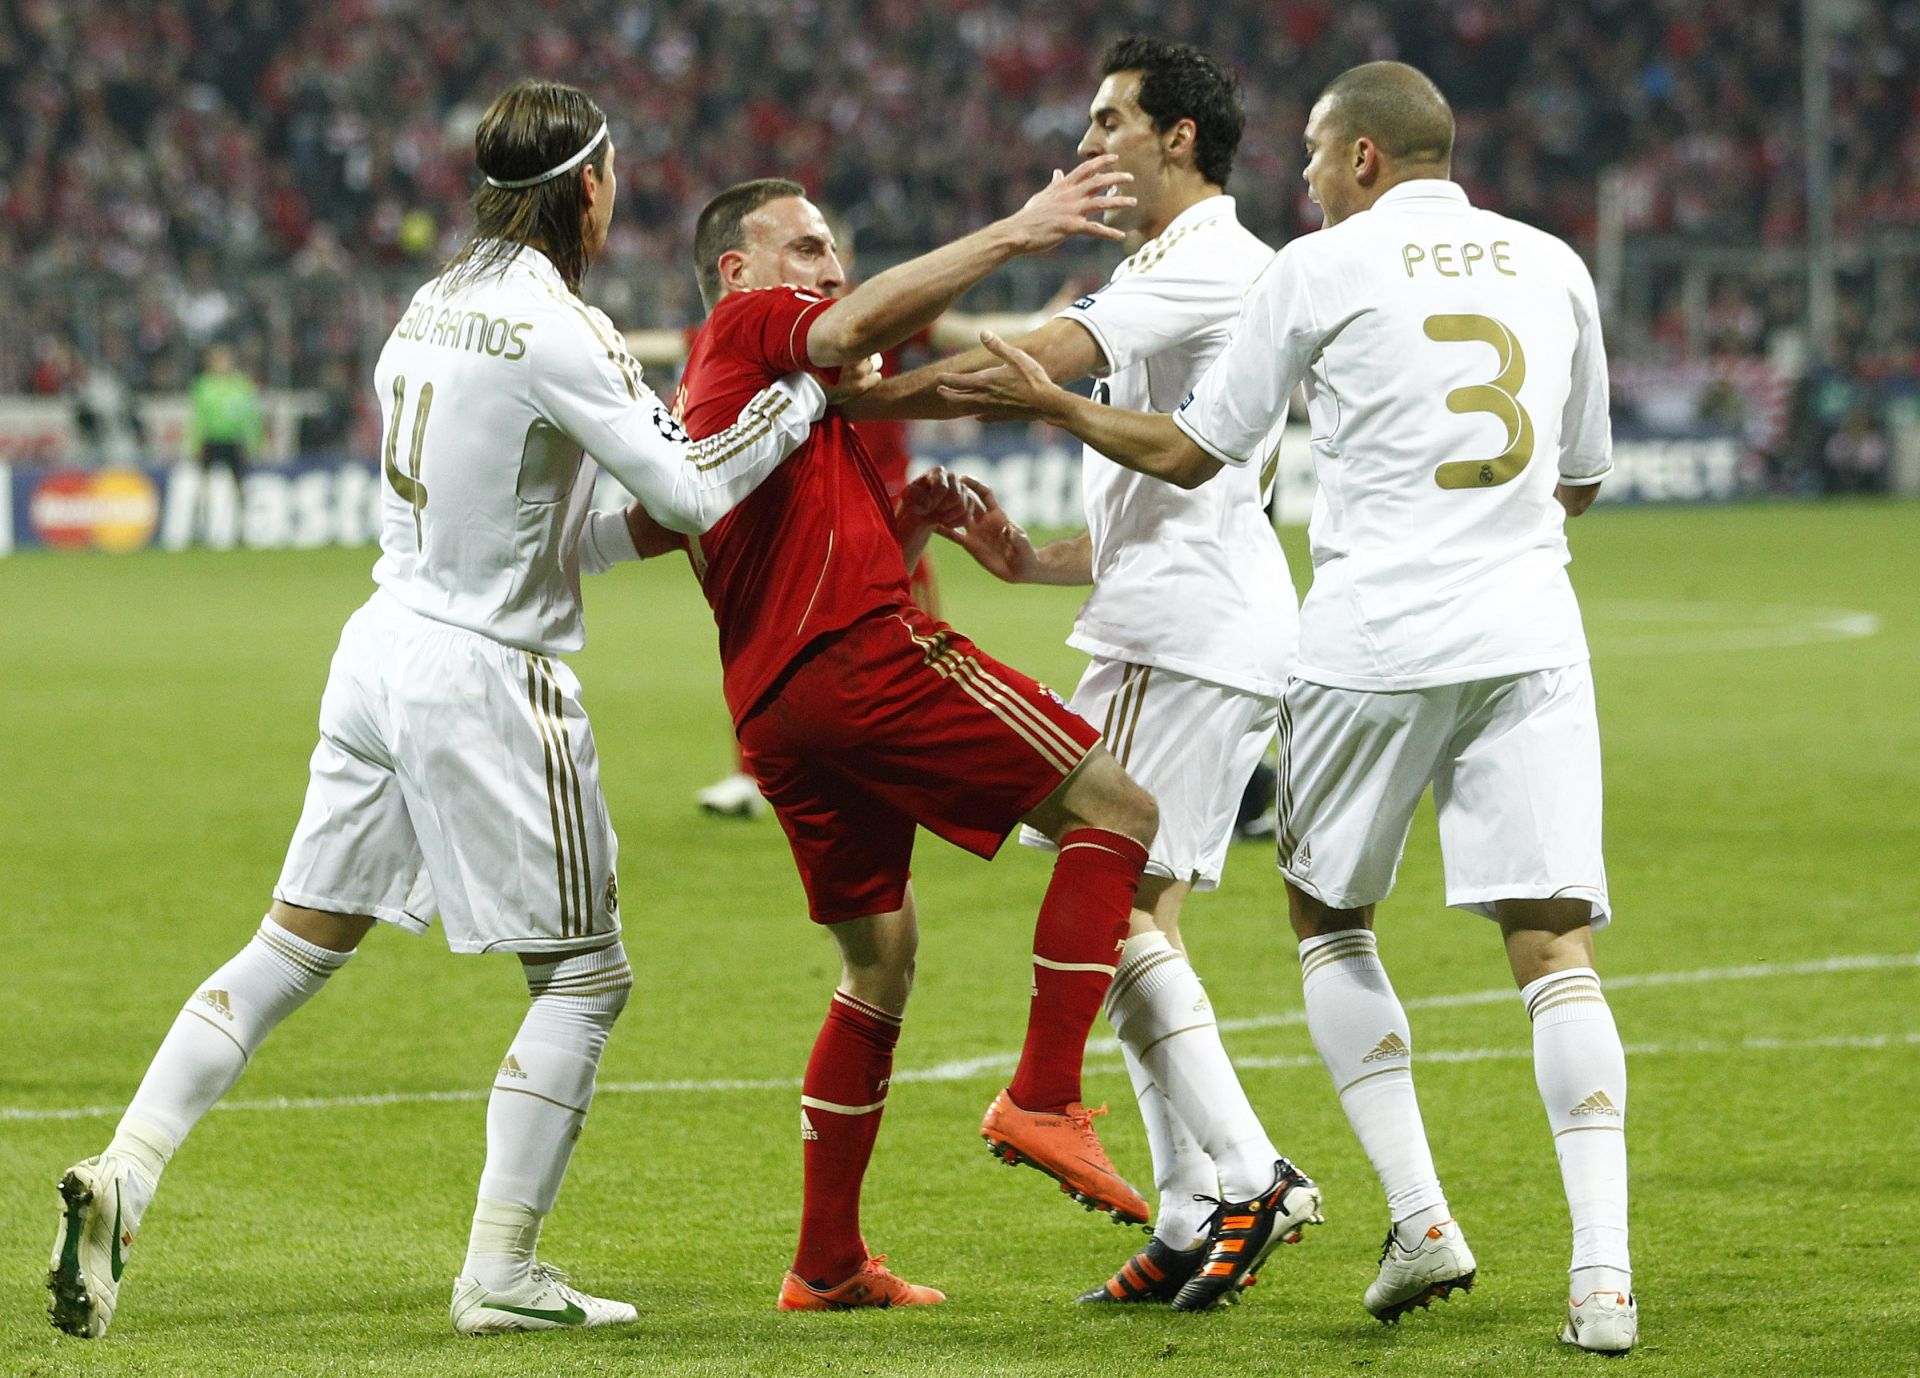 FUSSBALL: Champions League, Halbfinale, Hinspiel, FC Bayern Muenchen - Real Madrid, Muenchen, 17.04.2012 Disput: Frank Ribery (Bayern, 2.v.l.) - Sergio Ramos (l.) und Pepe (beide Real, r.) © pixathlon PILKA NOZNA LIGA MISTRZOW MECZ BAYERN MONACHIUM REAL MADRYT FOT: PIXATHLON/NEWSPIX.PL POLAND ONLY!!! --- Newspix.pl *** Local Caption *** www.newspix.pl mail us: info@newspix.pl call us: 0048 022 23 22 222 --- Polish Picture Agency by Ringier Axel Springer Poland